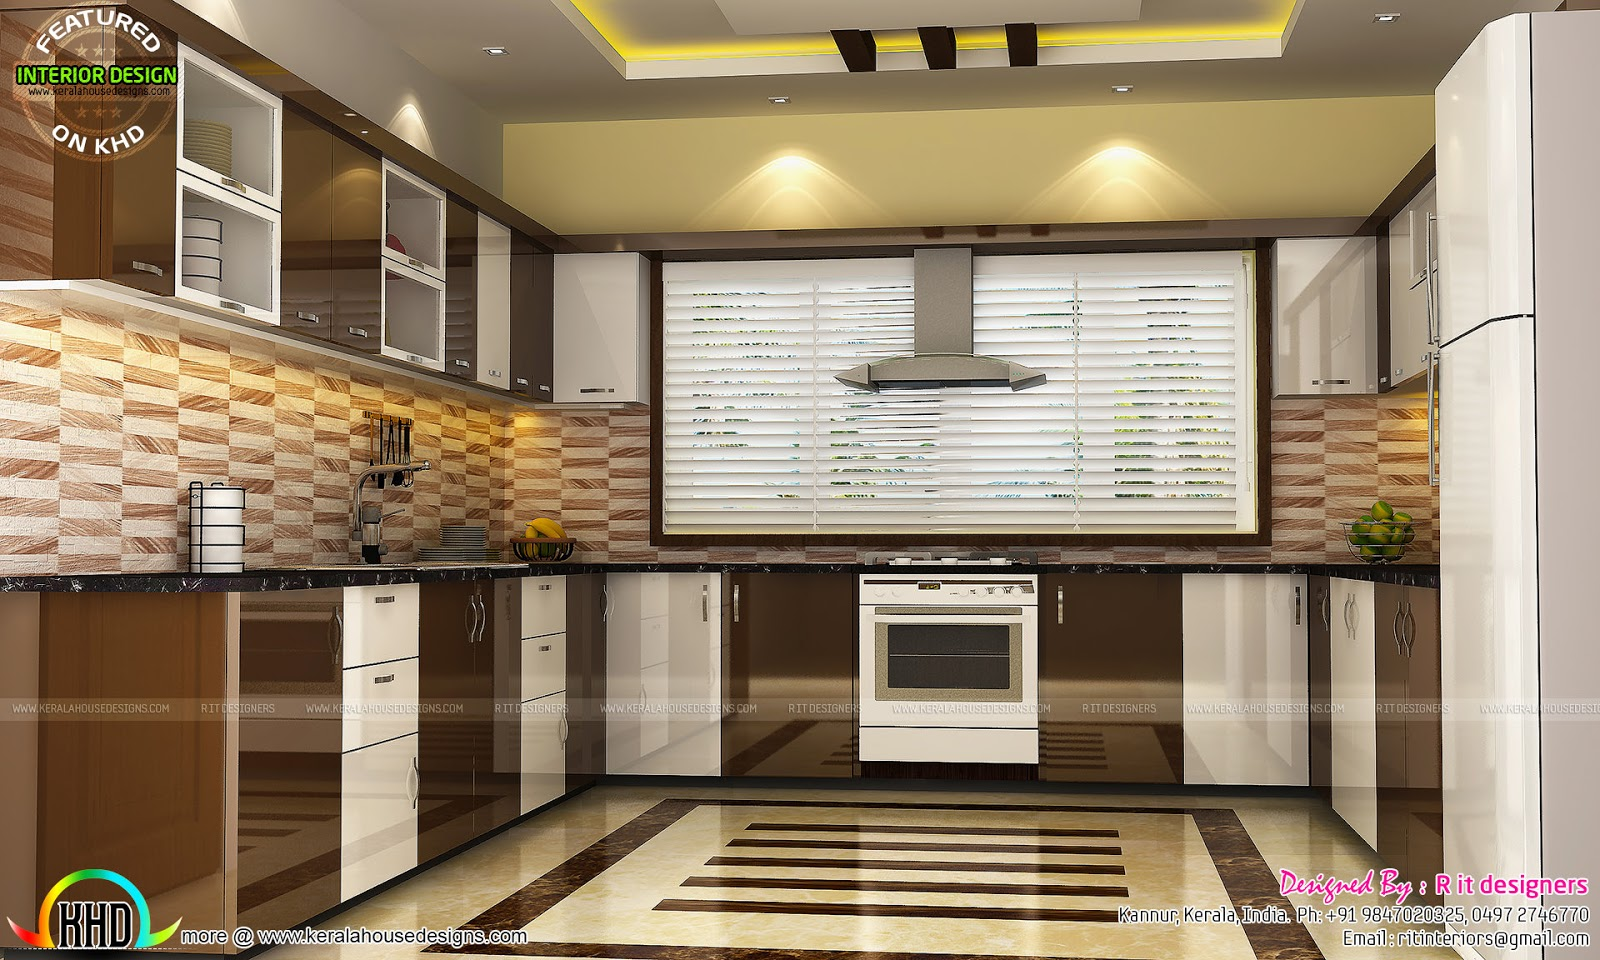 Kitchen living bedroom dining interior decor kerala for Interior designs in kerala